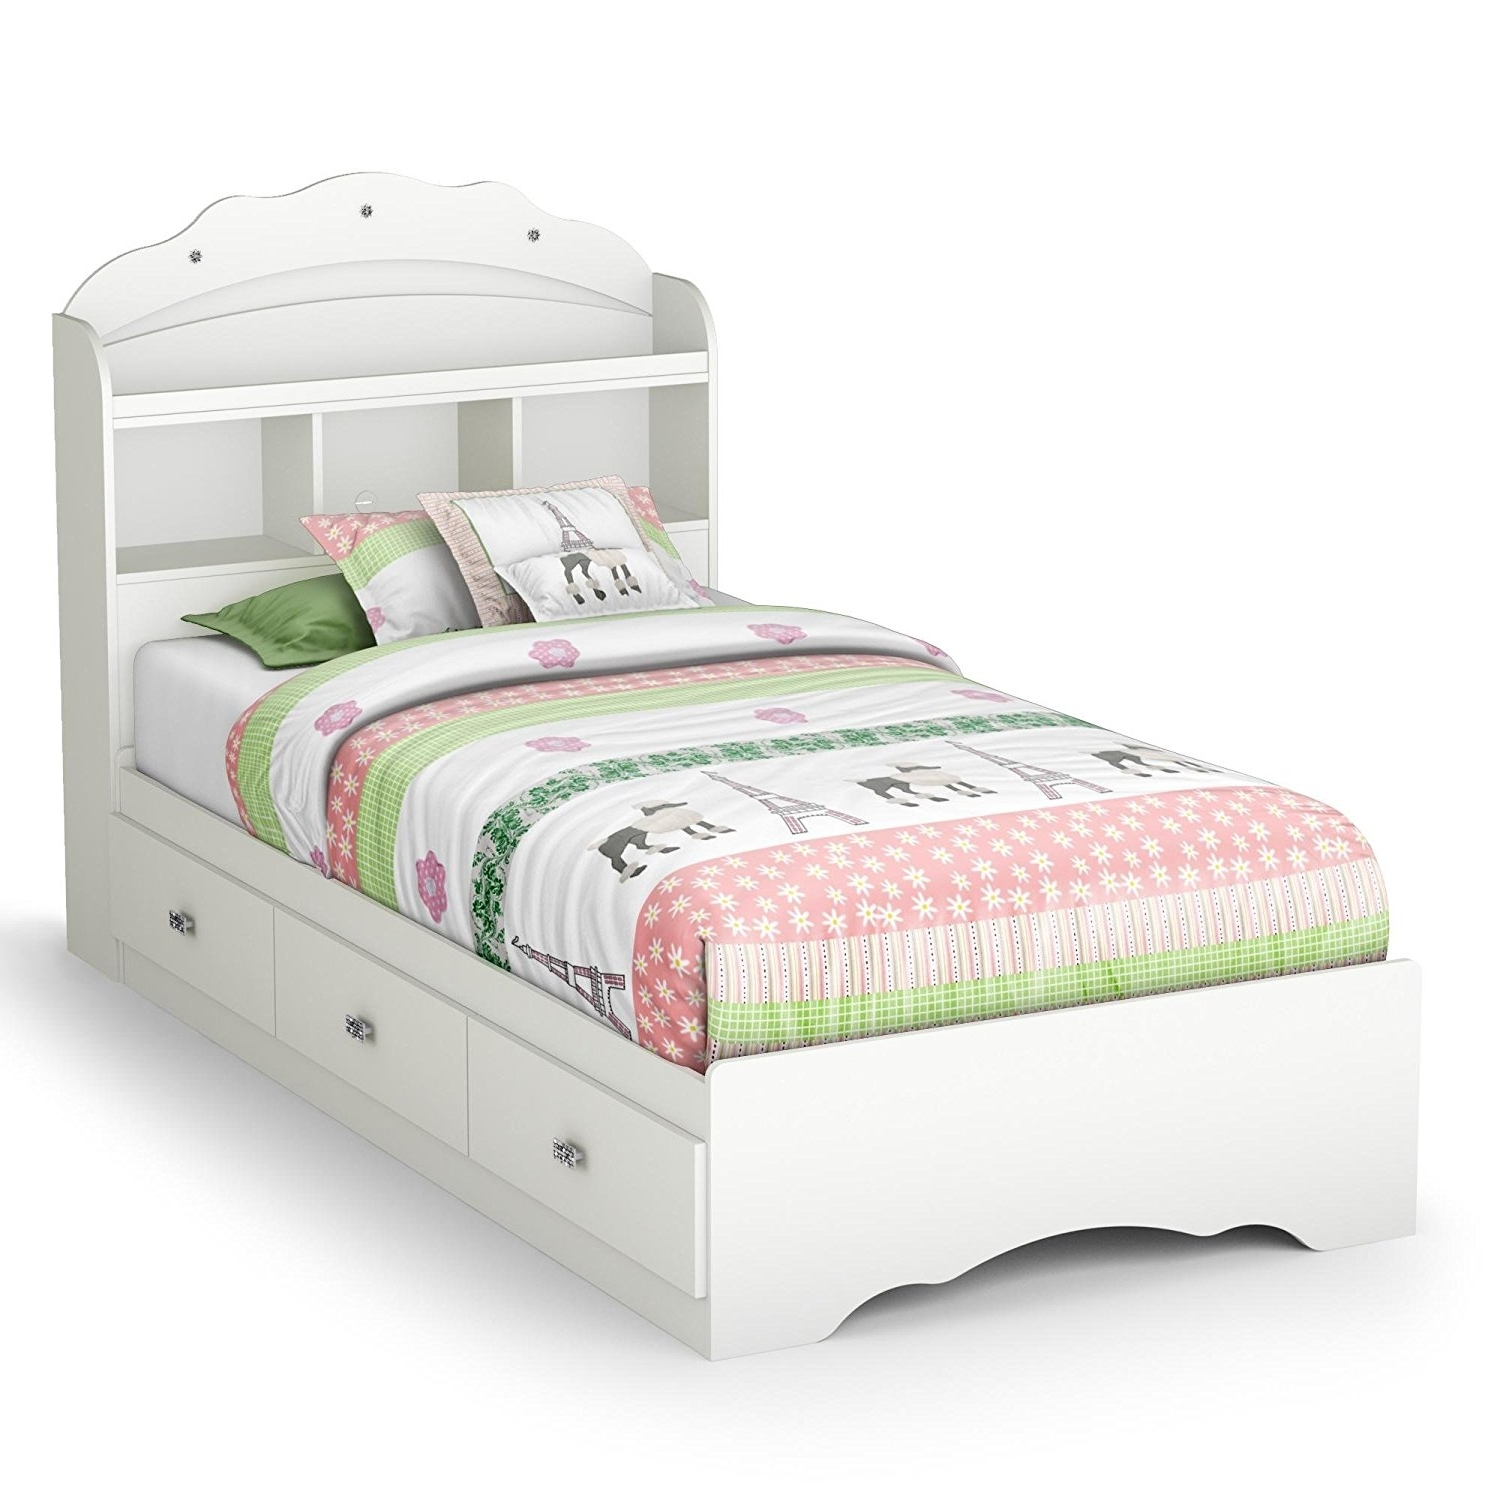 Twin Headboard Bookcases With Regard To Most Up To Date Amazon: Tiara Twin Mate's Bed & Bookcase Headboard: Toys & Games (View 12 of 15)